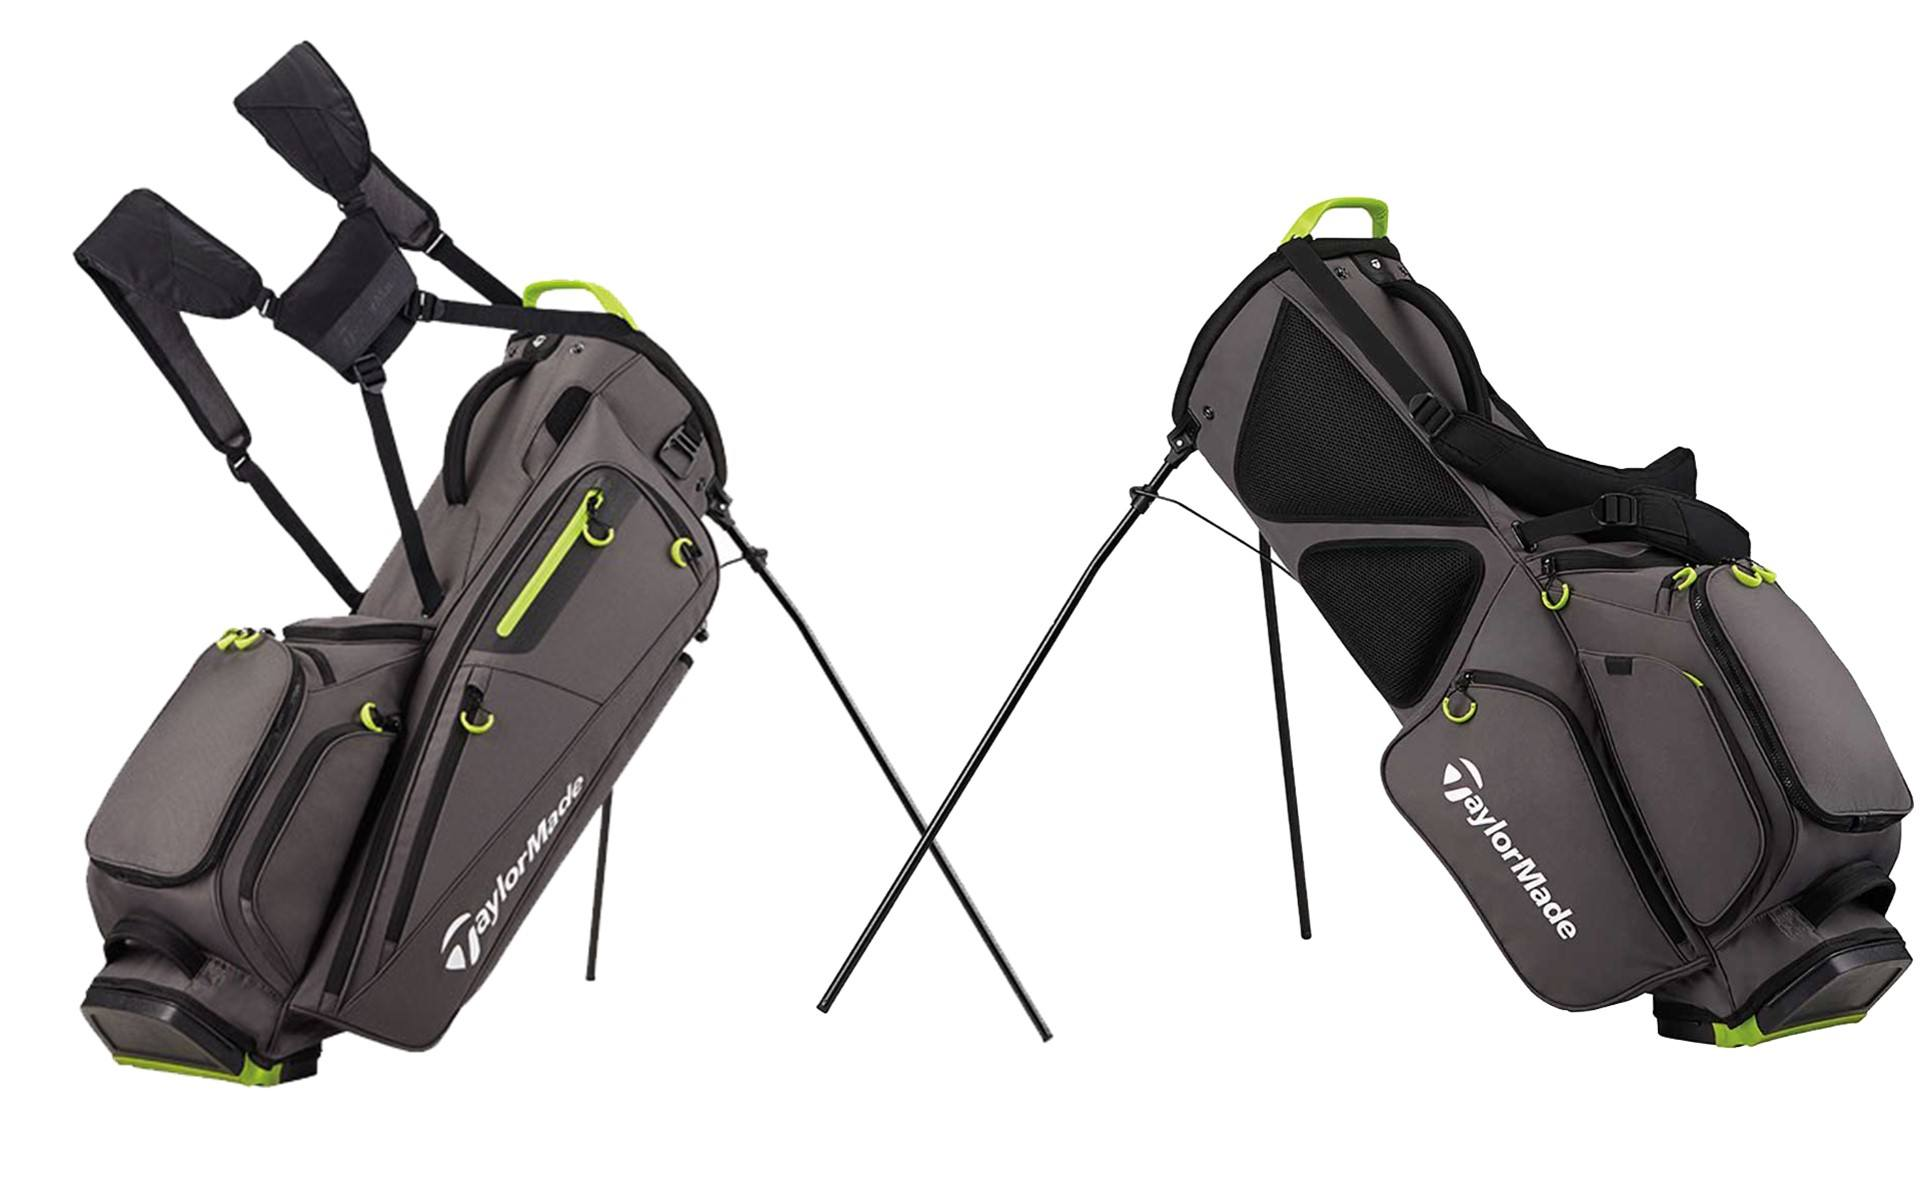 The Best Golf Bags Ultimate Guide To